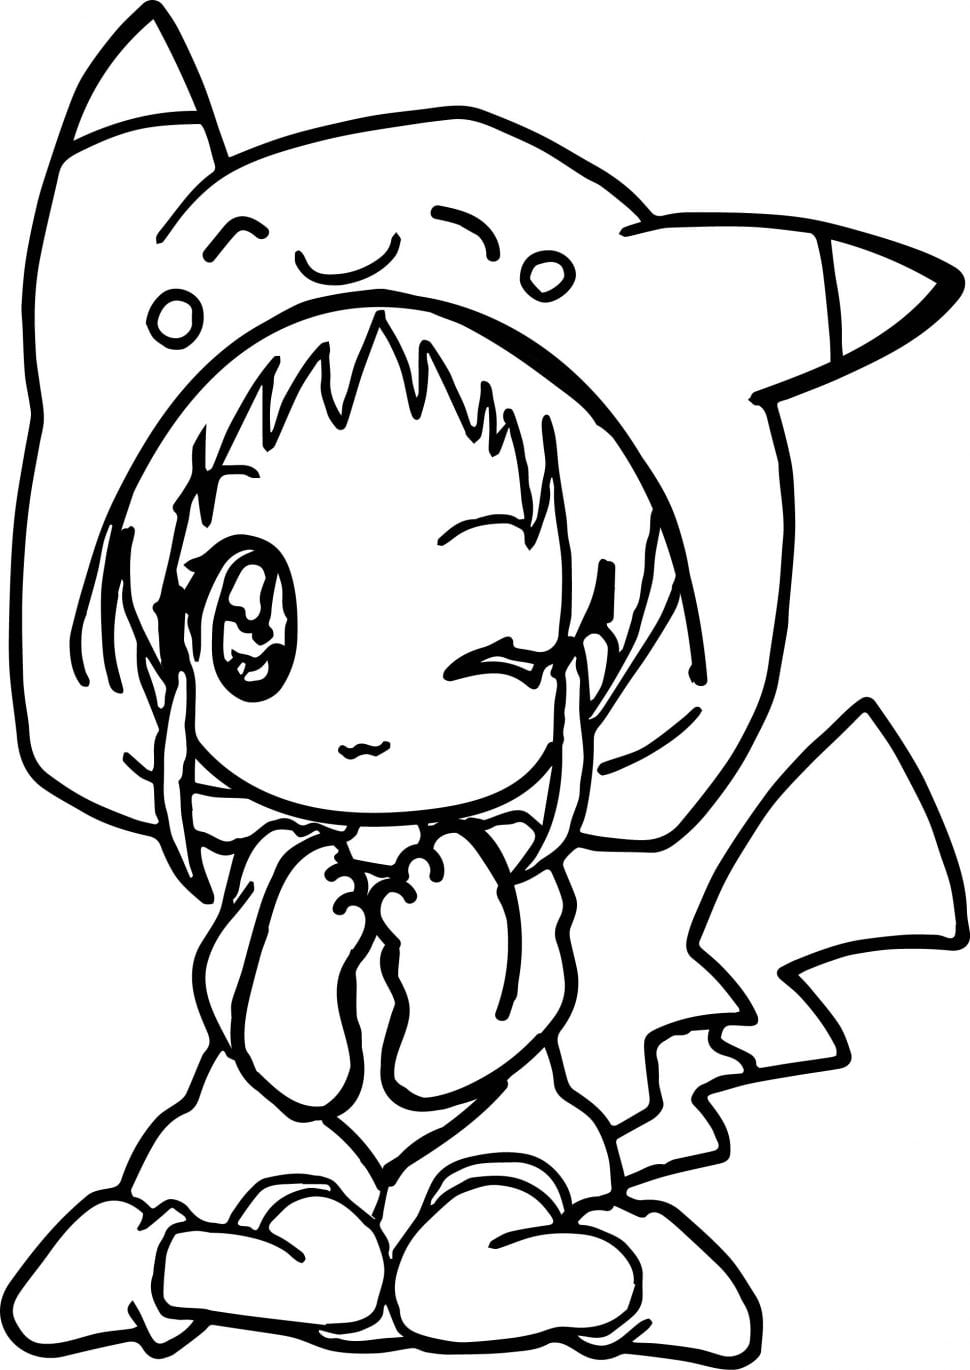 Marvelous Anime Coloring Pages Preschool For Amusing Cute Anime